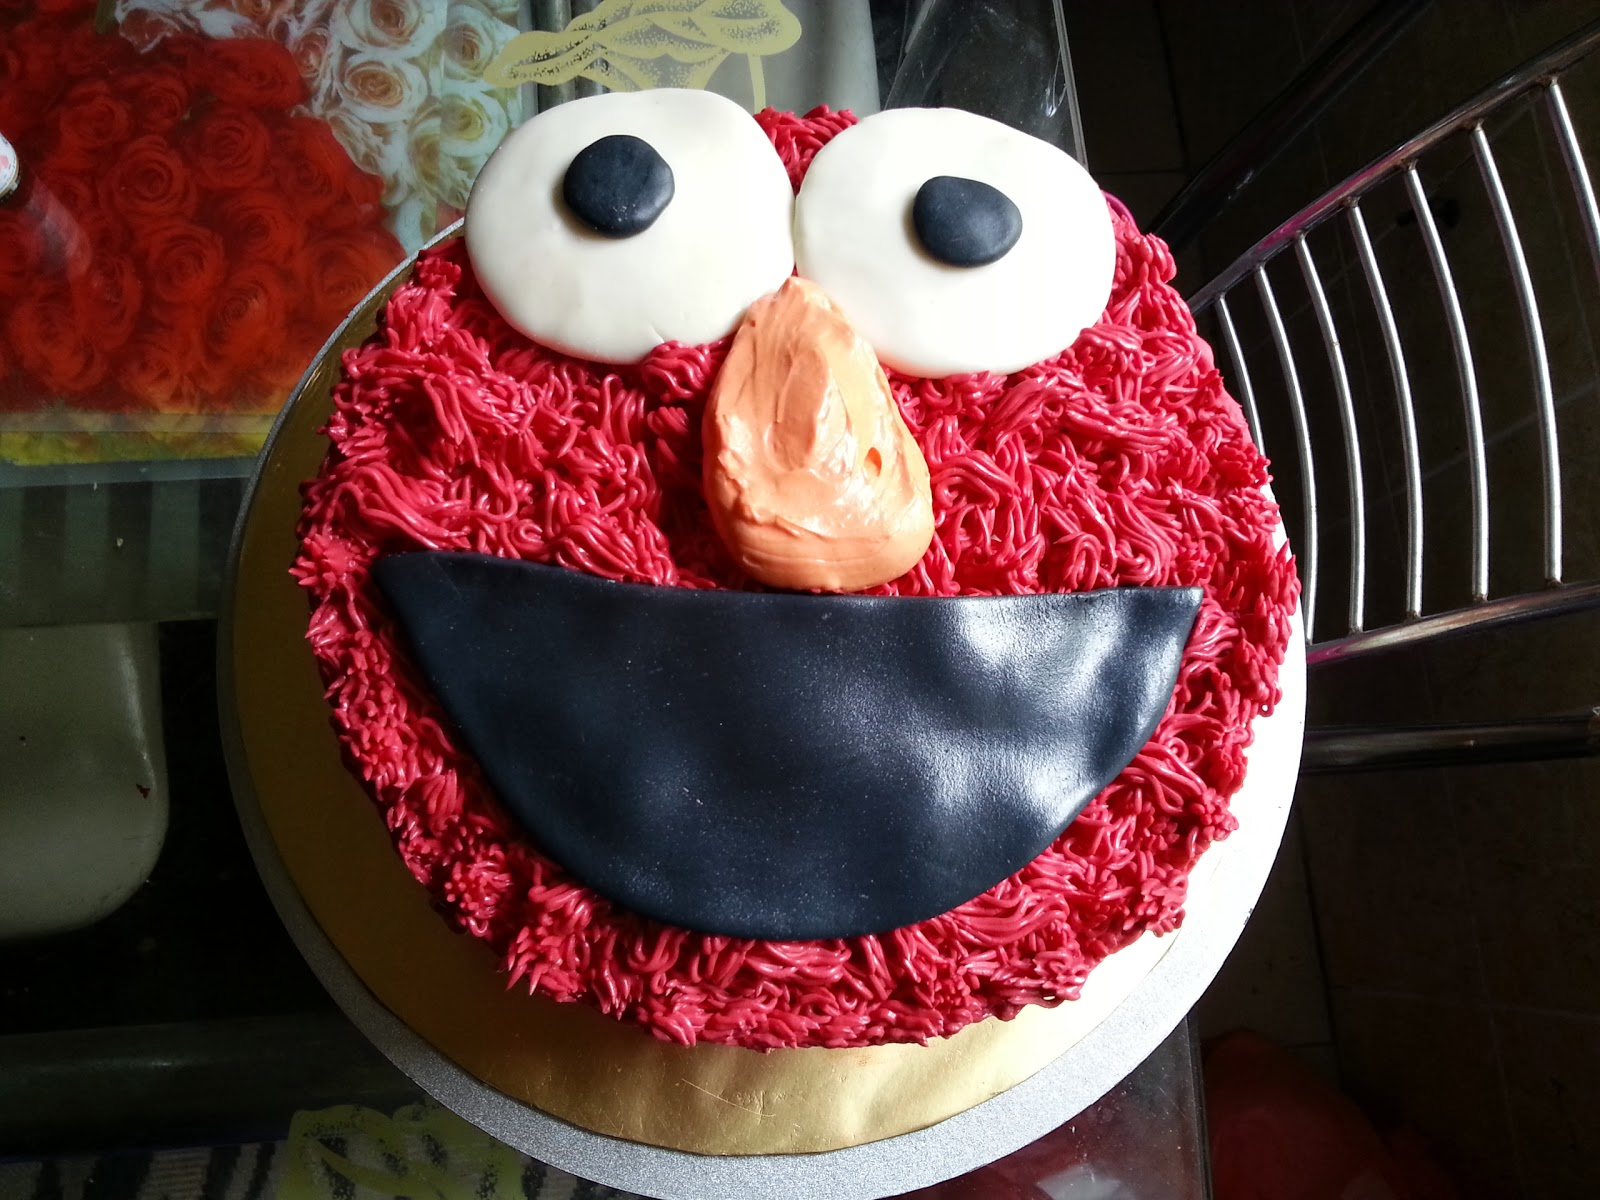 ... cake is red velvet it s icing on the cake the elmo cupcakes are red